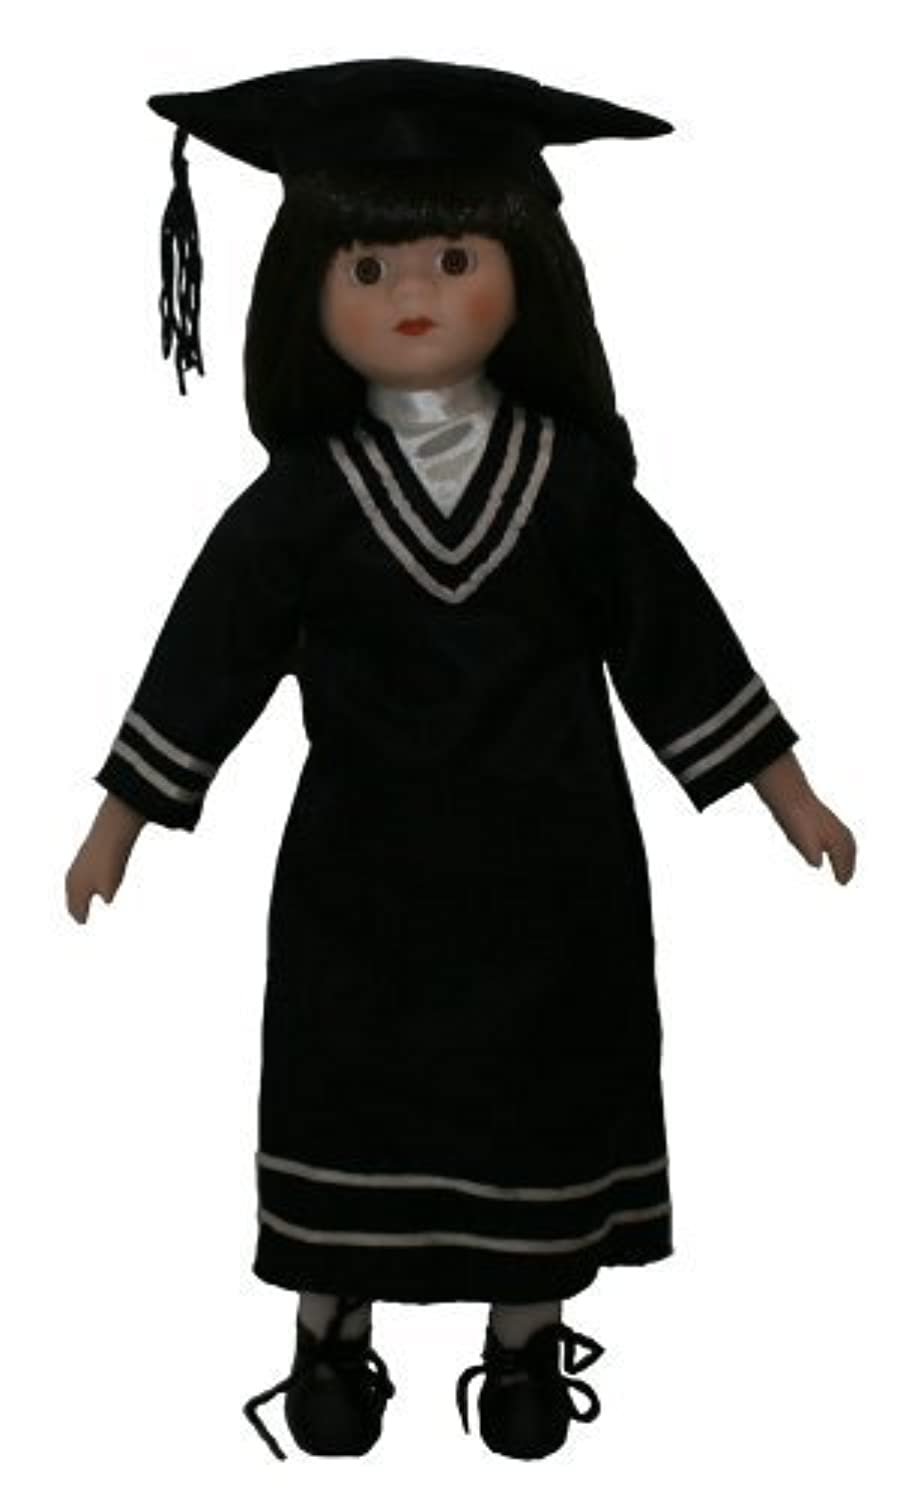 Standing Student Graduate Porcelain Doll, 16 Inches, with Graduation Gown and Cap